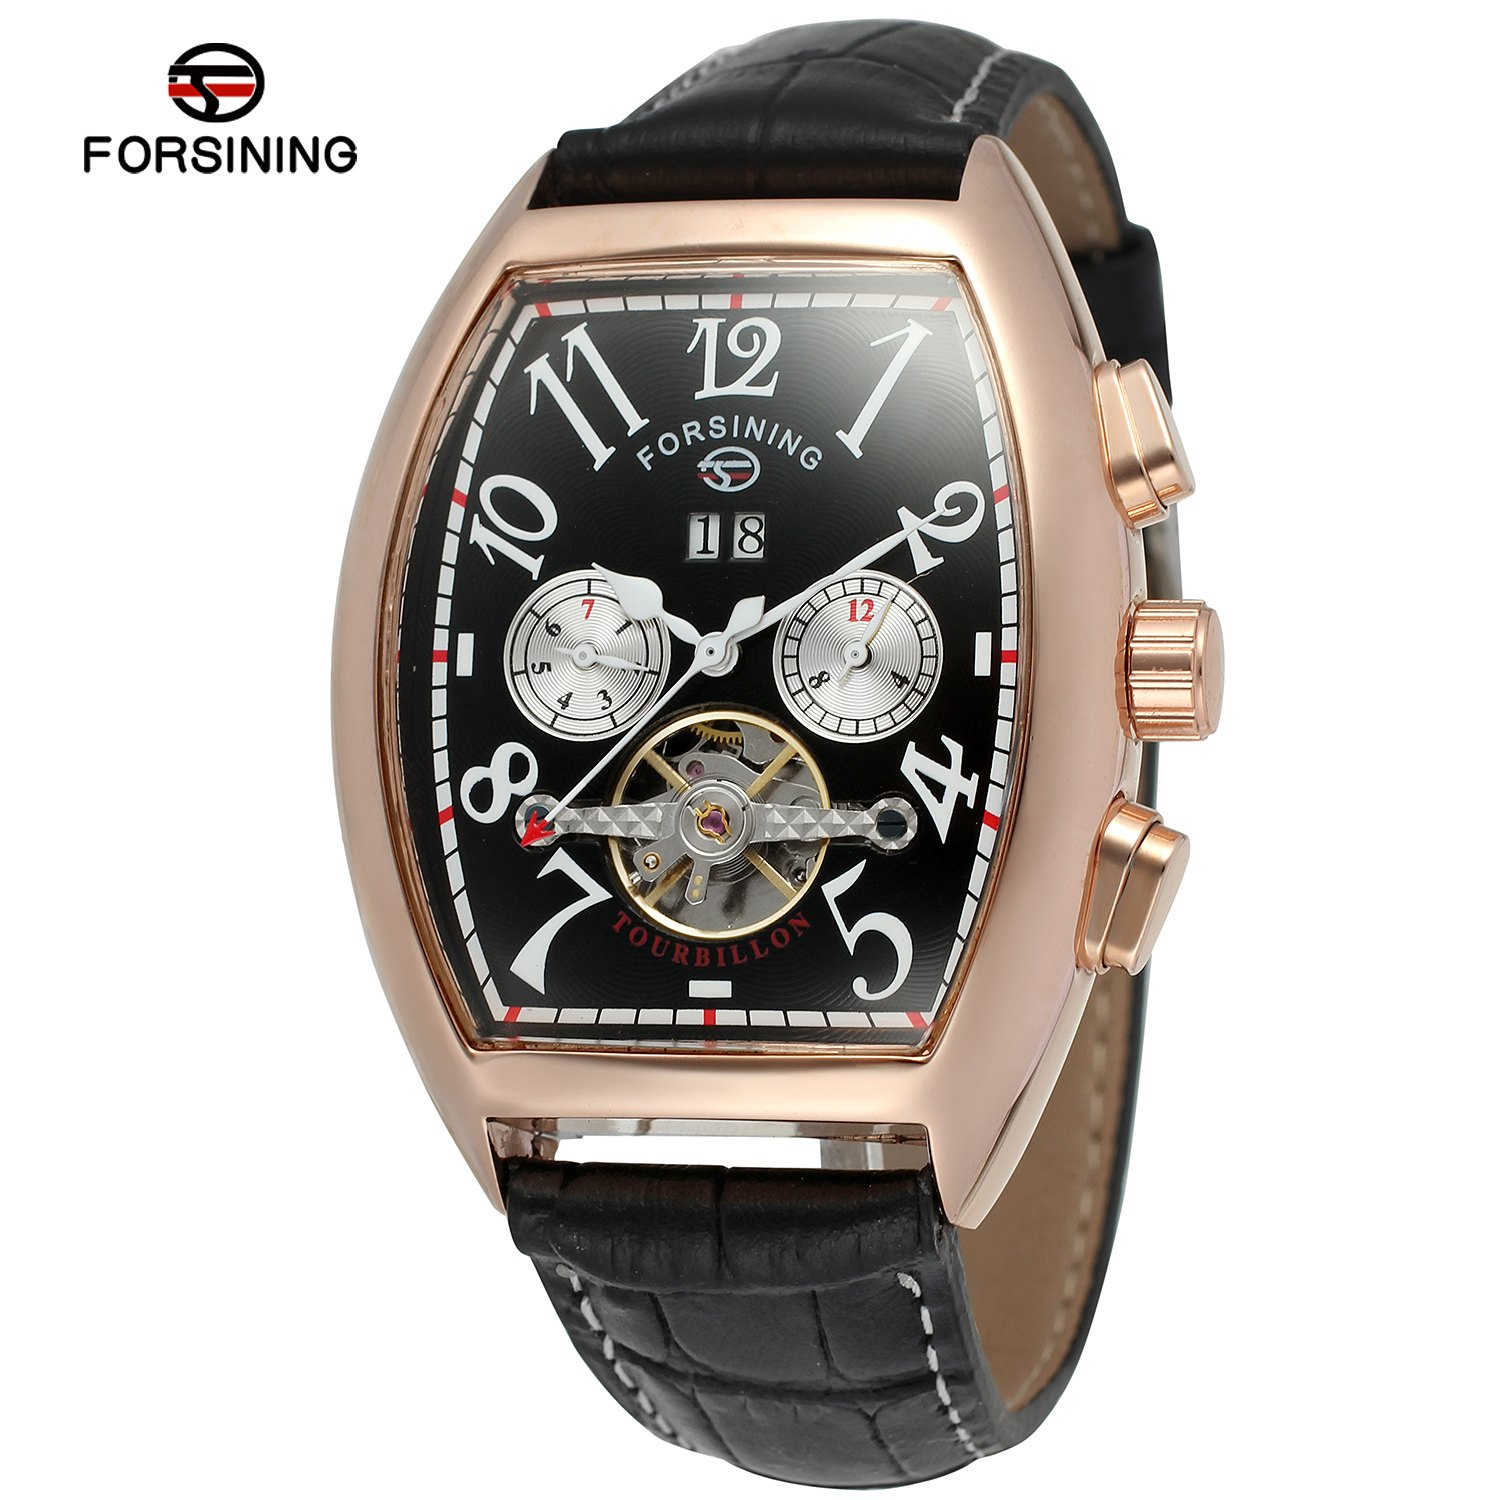 Forsining Date Display Tonneau Rose Gold Case Mens Watches Top Luxury Automatic Watch Leather Strap Clock Men Tourbillon Watch forsining date month display rose golden case mens watches top brand luxury automatic watch clock men casual fashion clock watch